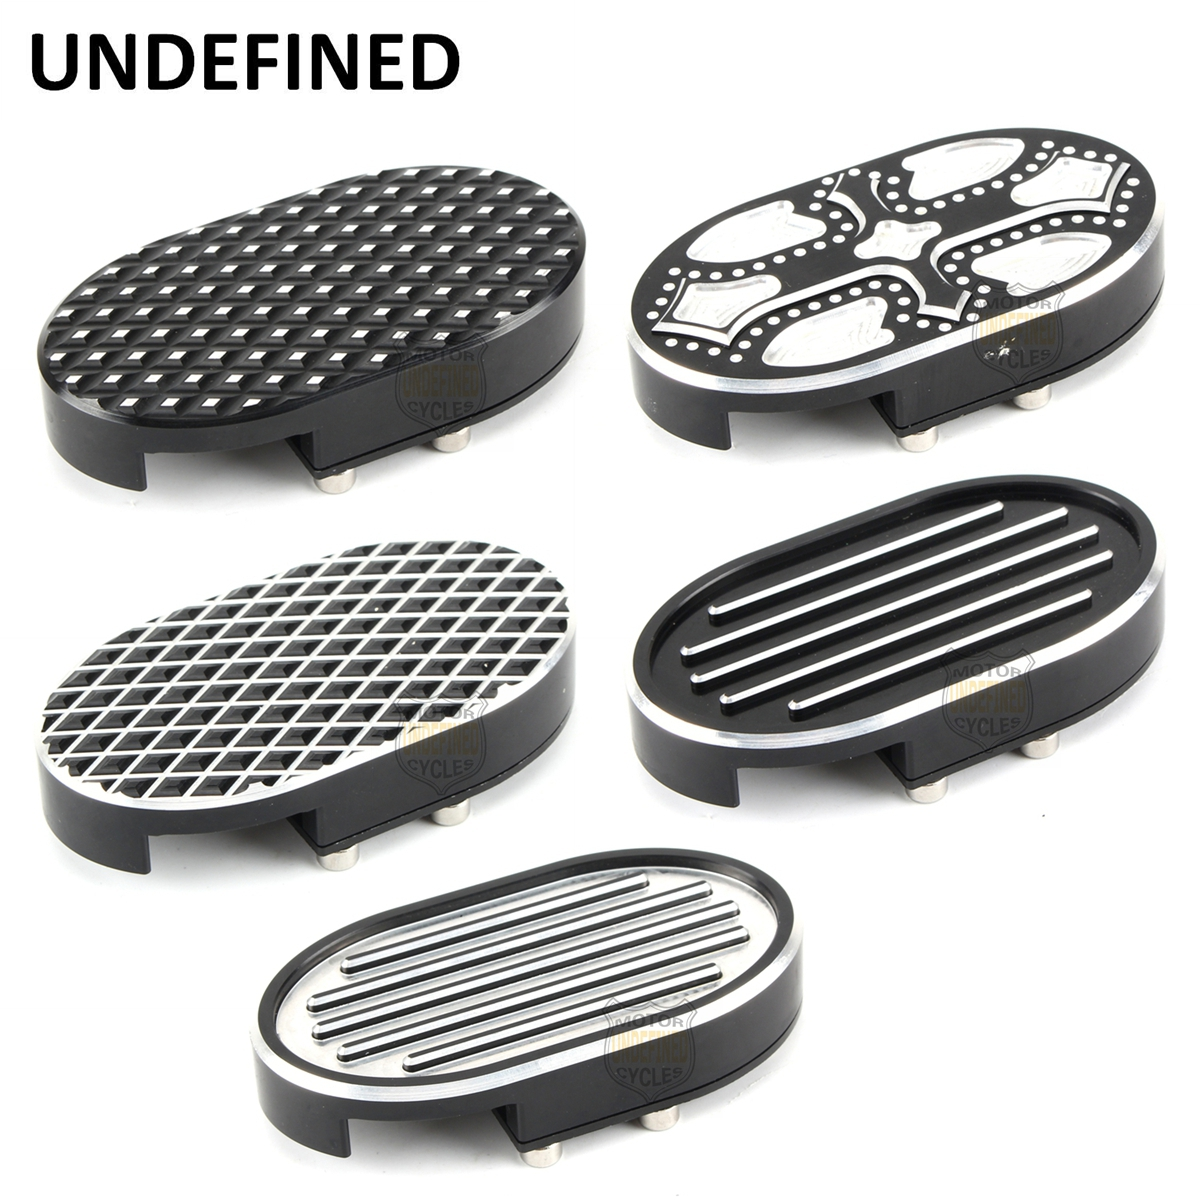 Motorcycle Parts CNC Brake Pedal Pad Cover Aluminum Footreats Cover For Harley Dyna Wide Glide Sportster XL883 XL1200 UNDEFINED motorcycle chrome front spoiler chin fairing for harley sportster xl883 1200 04 15 new